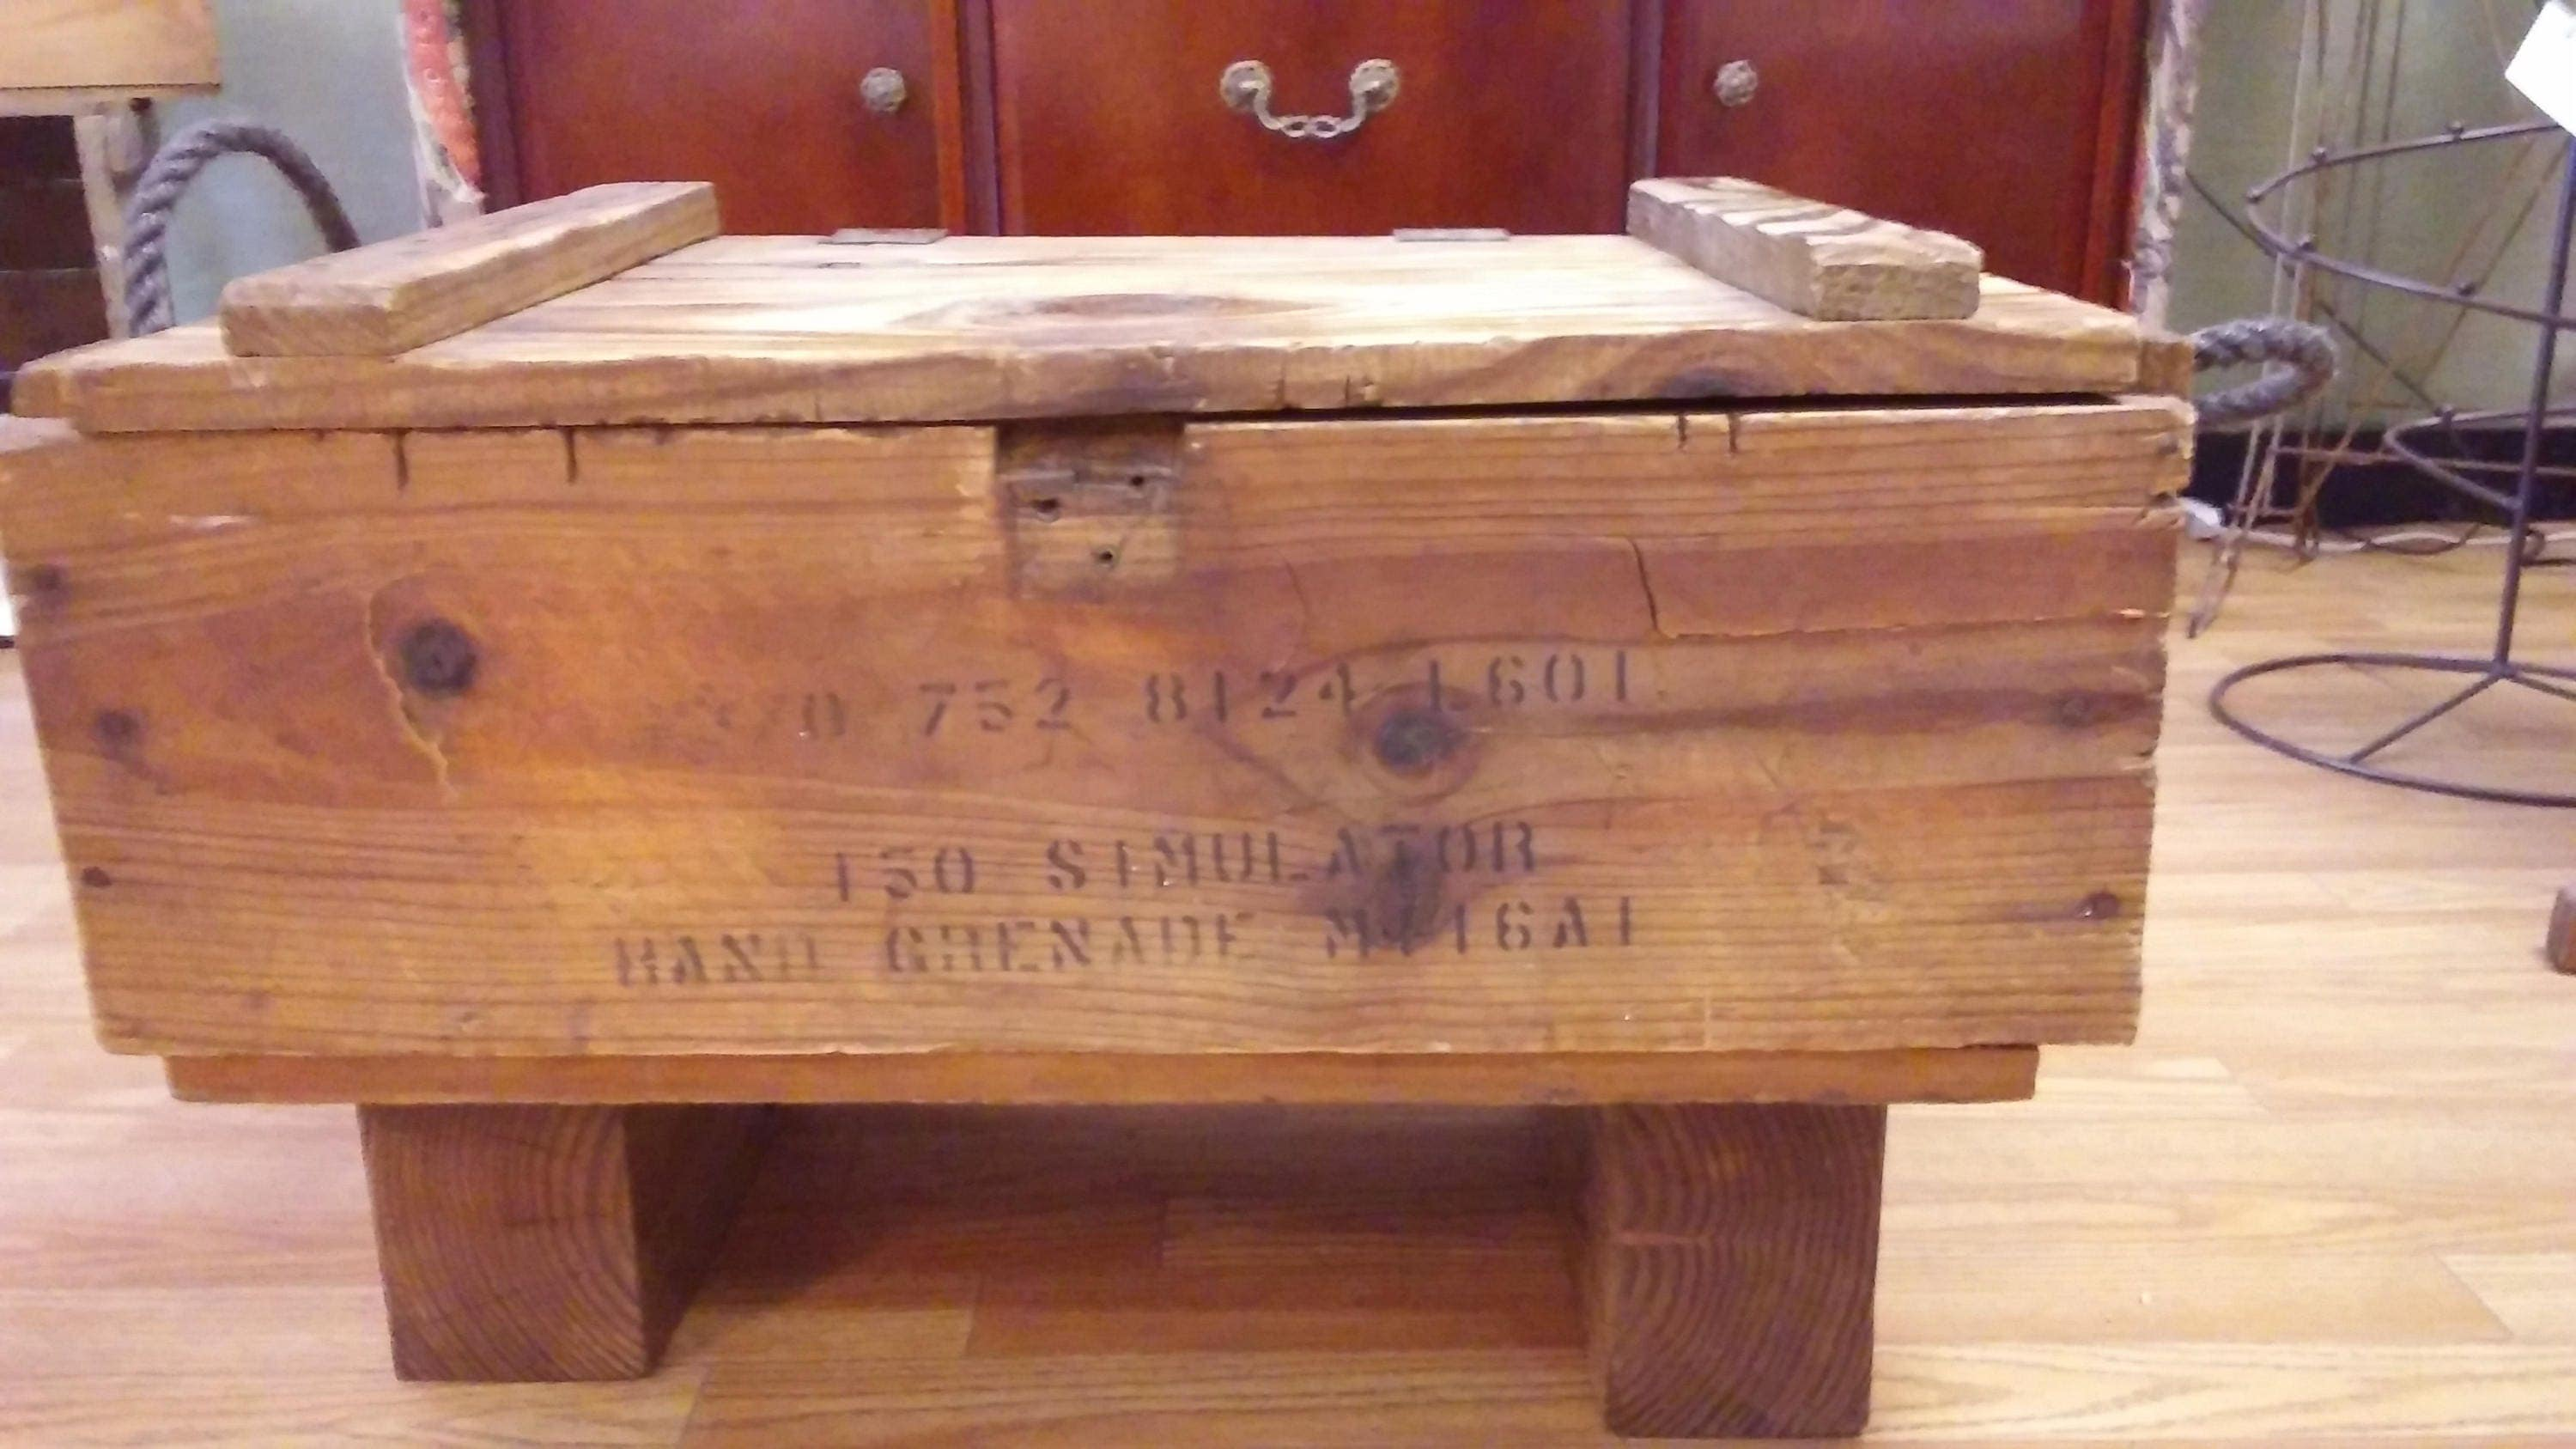 SOLD OUT Upcycled Wooden Ammo Crate Coffee Table Rustic Home